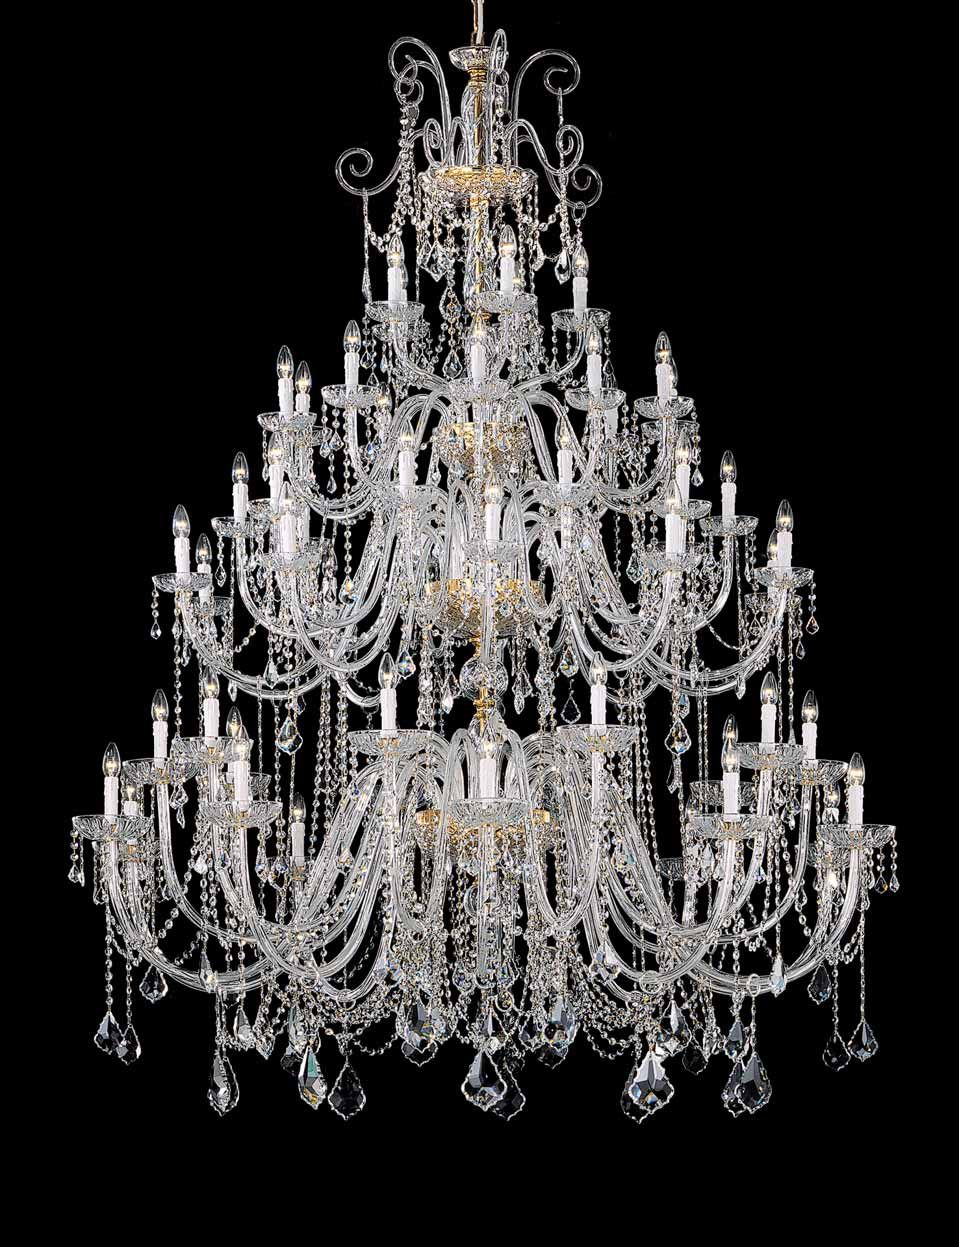 Topdomus large lead crystal chandelier with artistic hand and blown topdomus large lead crystal chandelier with artistic hand and blown glass or 463 ebay aloadofball Choice Image